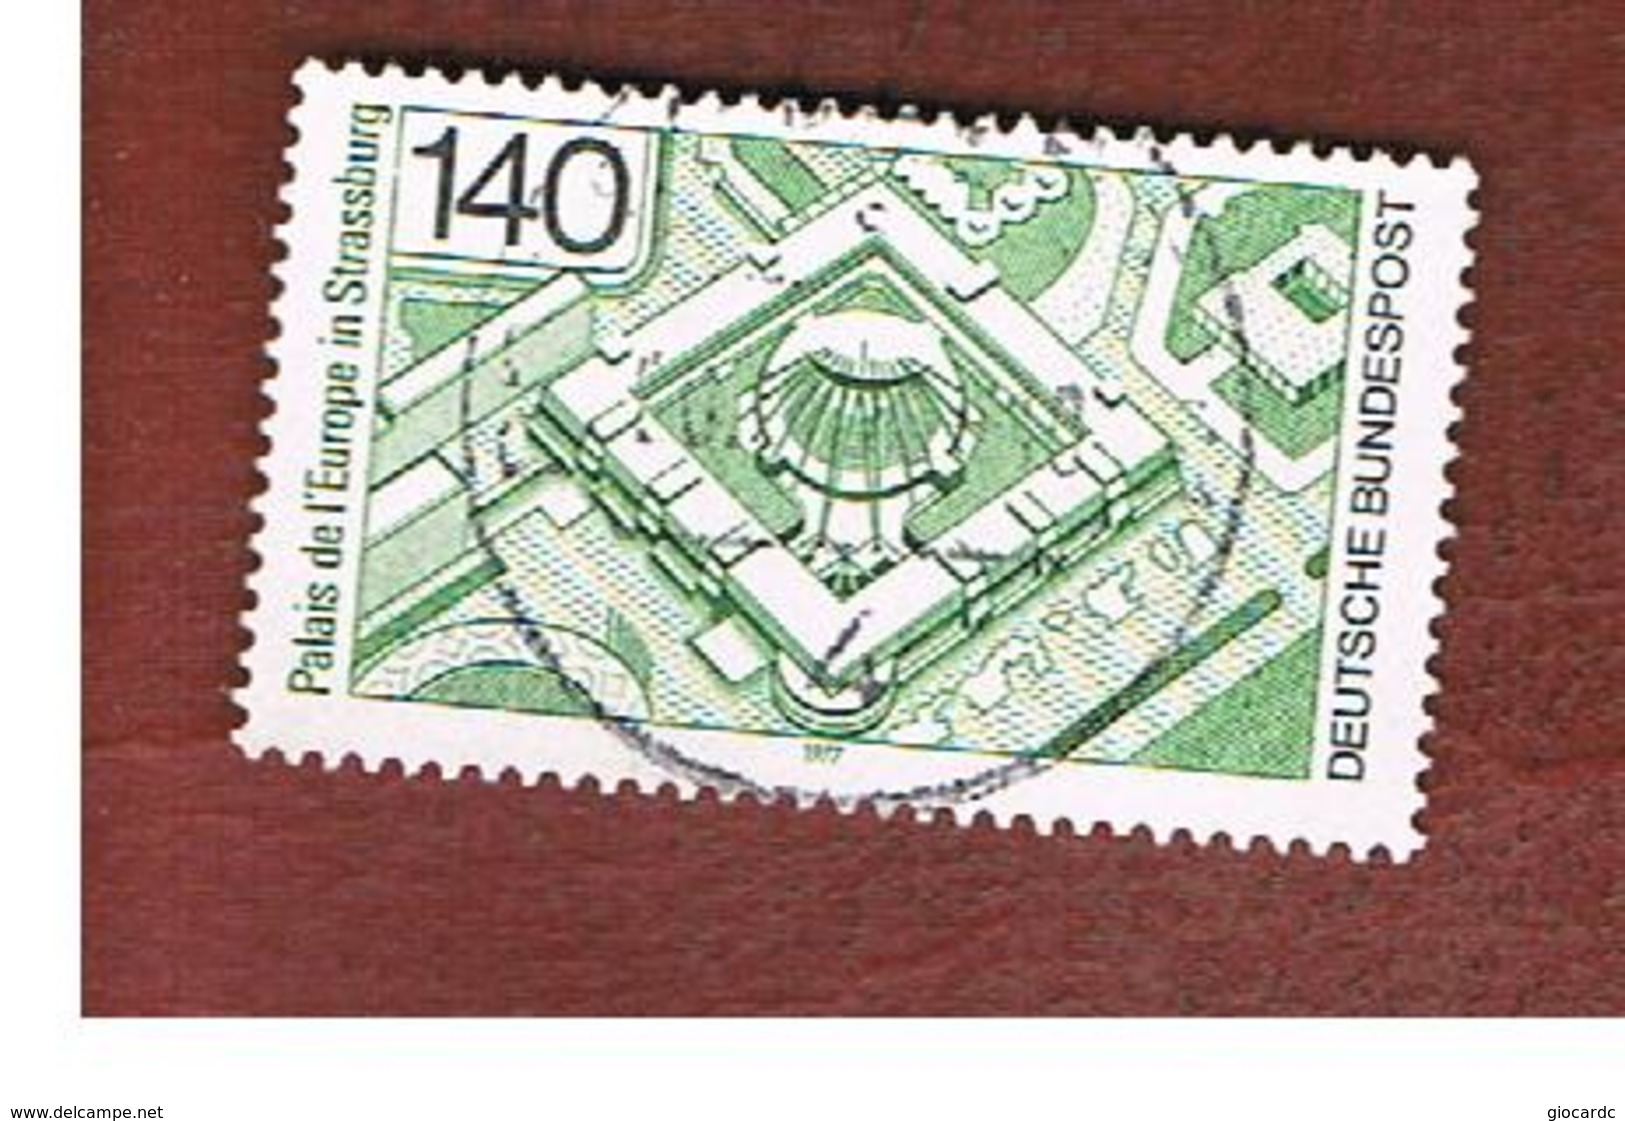 GERMANIA (GERMANY) - SG 1813  - 1977 COUNCIL OF EUROPE BUILDINGS   -  USED - Oblitérés